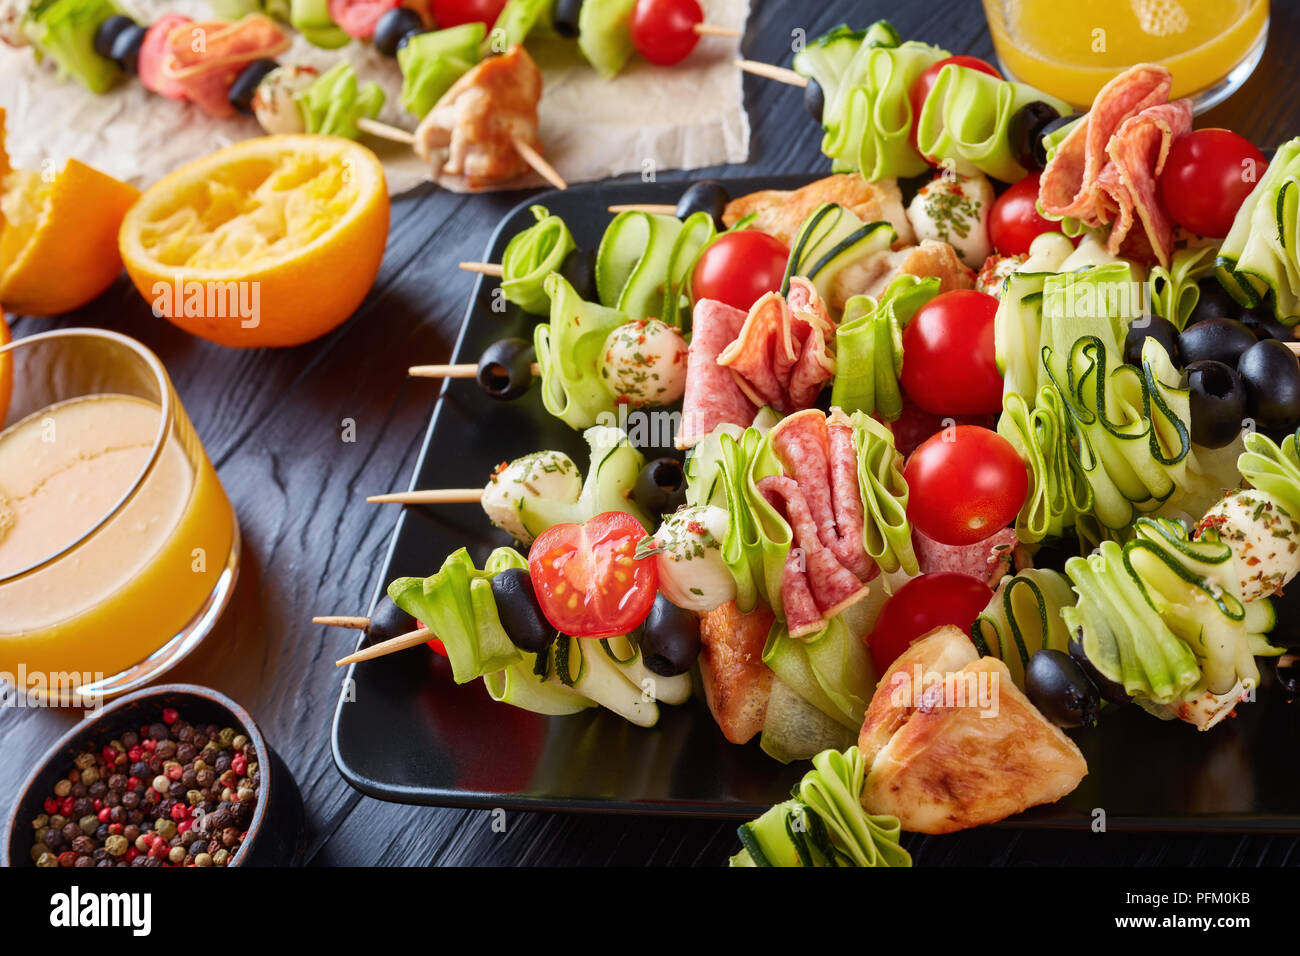 skewers with chicken meat, zucchini, tomatoes, mozzarella balls, salami slices, olives on a black plate on a wooden table with orange juice in glass c - Stock Image